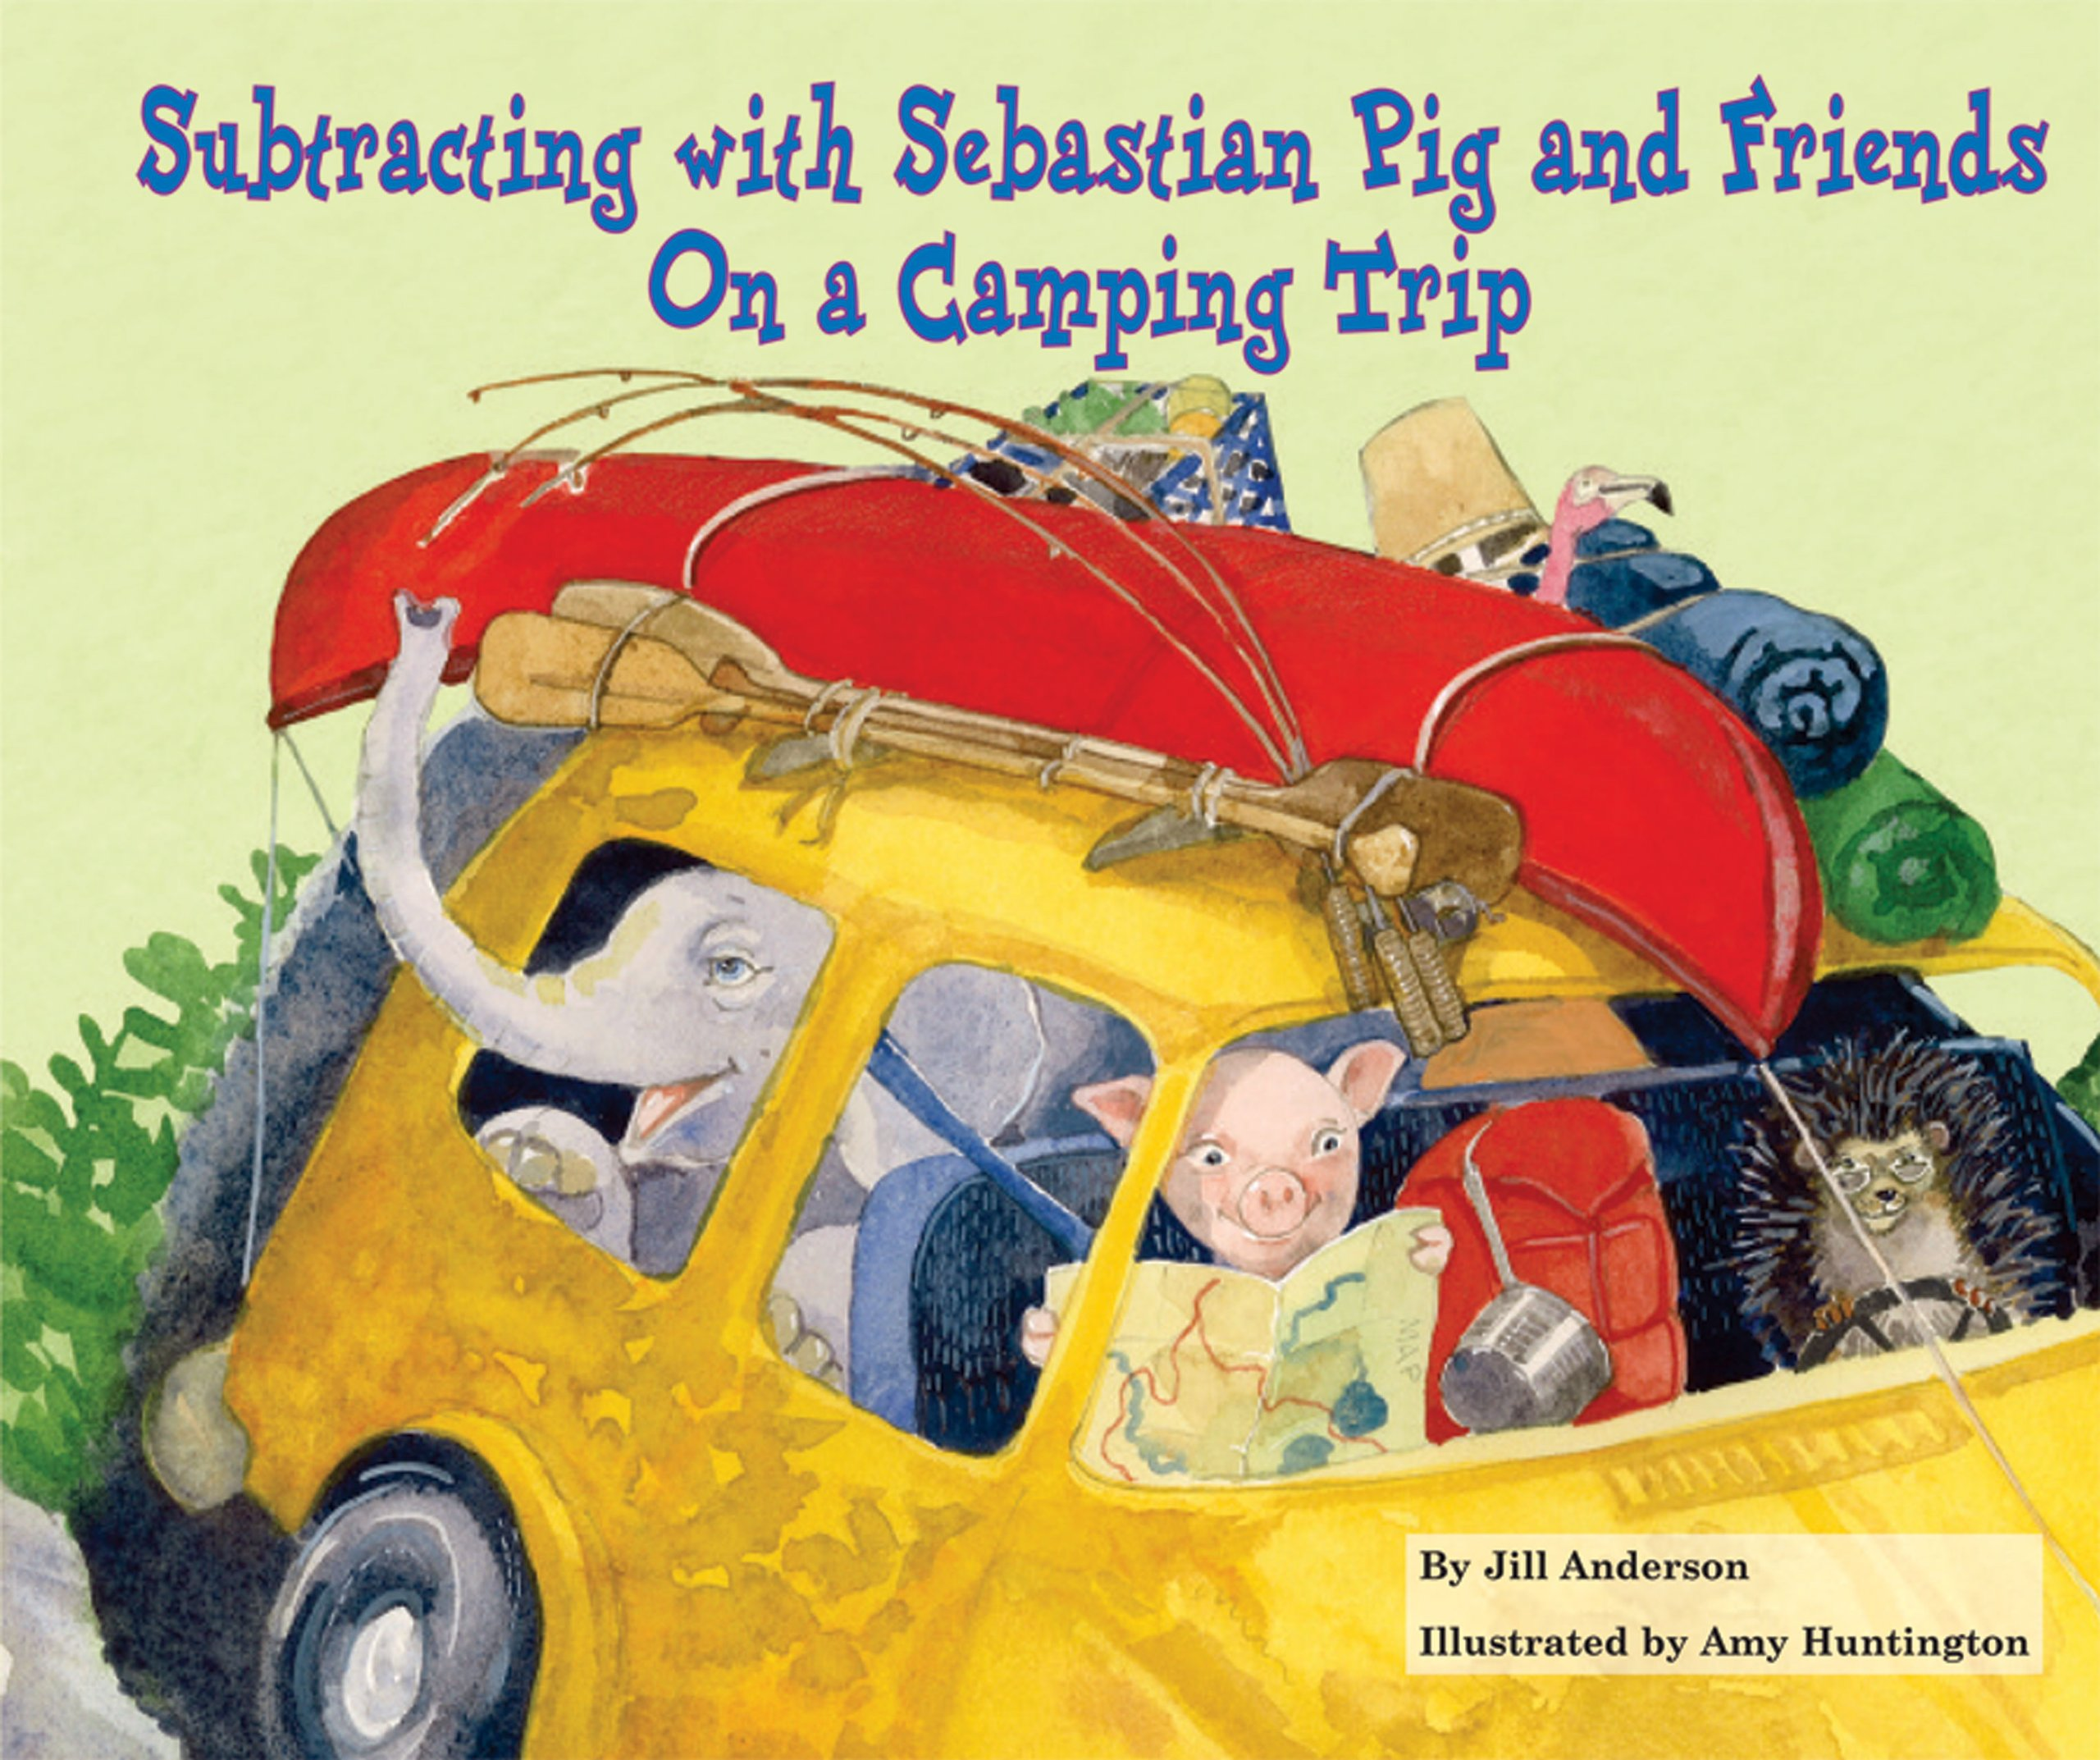 Subtracting with Sebastian Pig and Friends on a Camping Trip ...